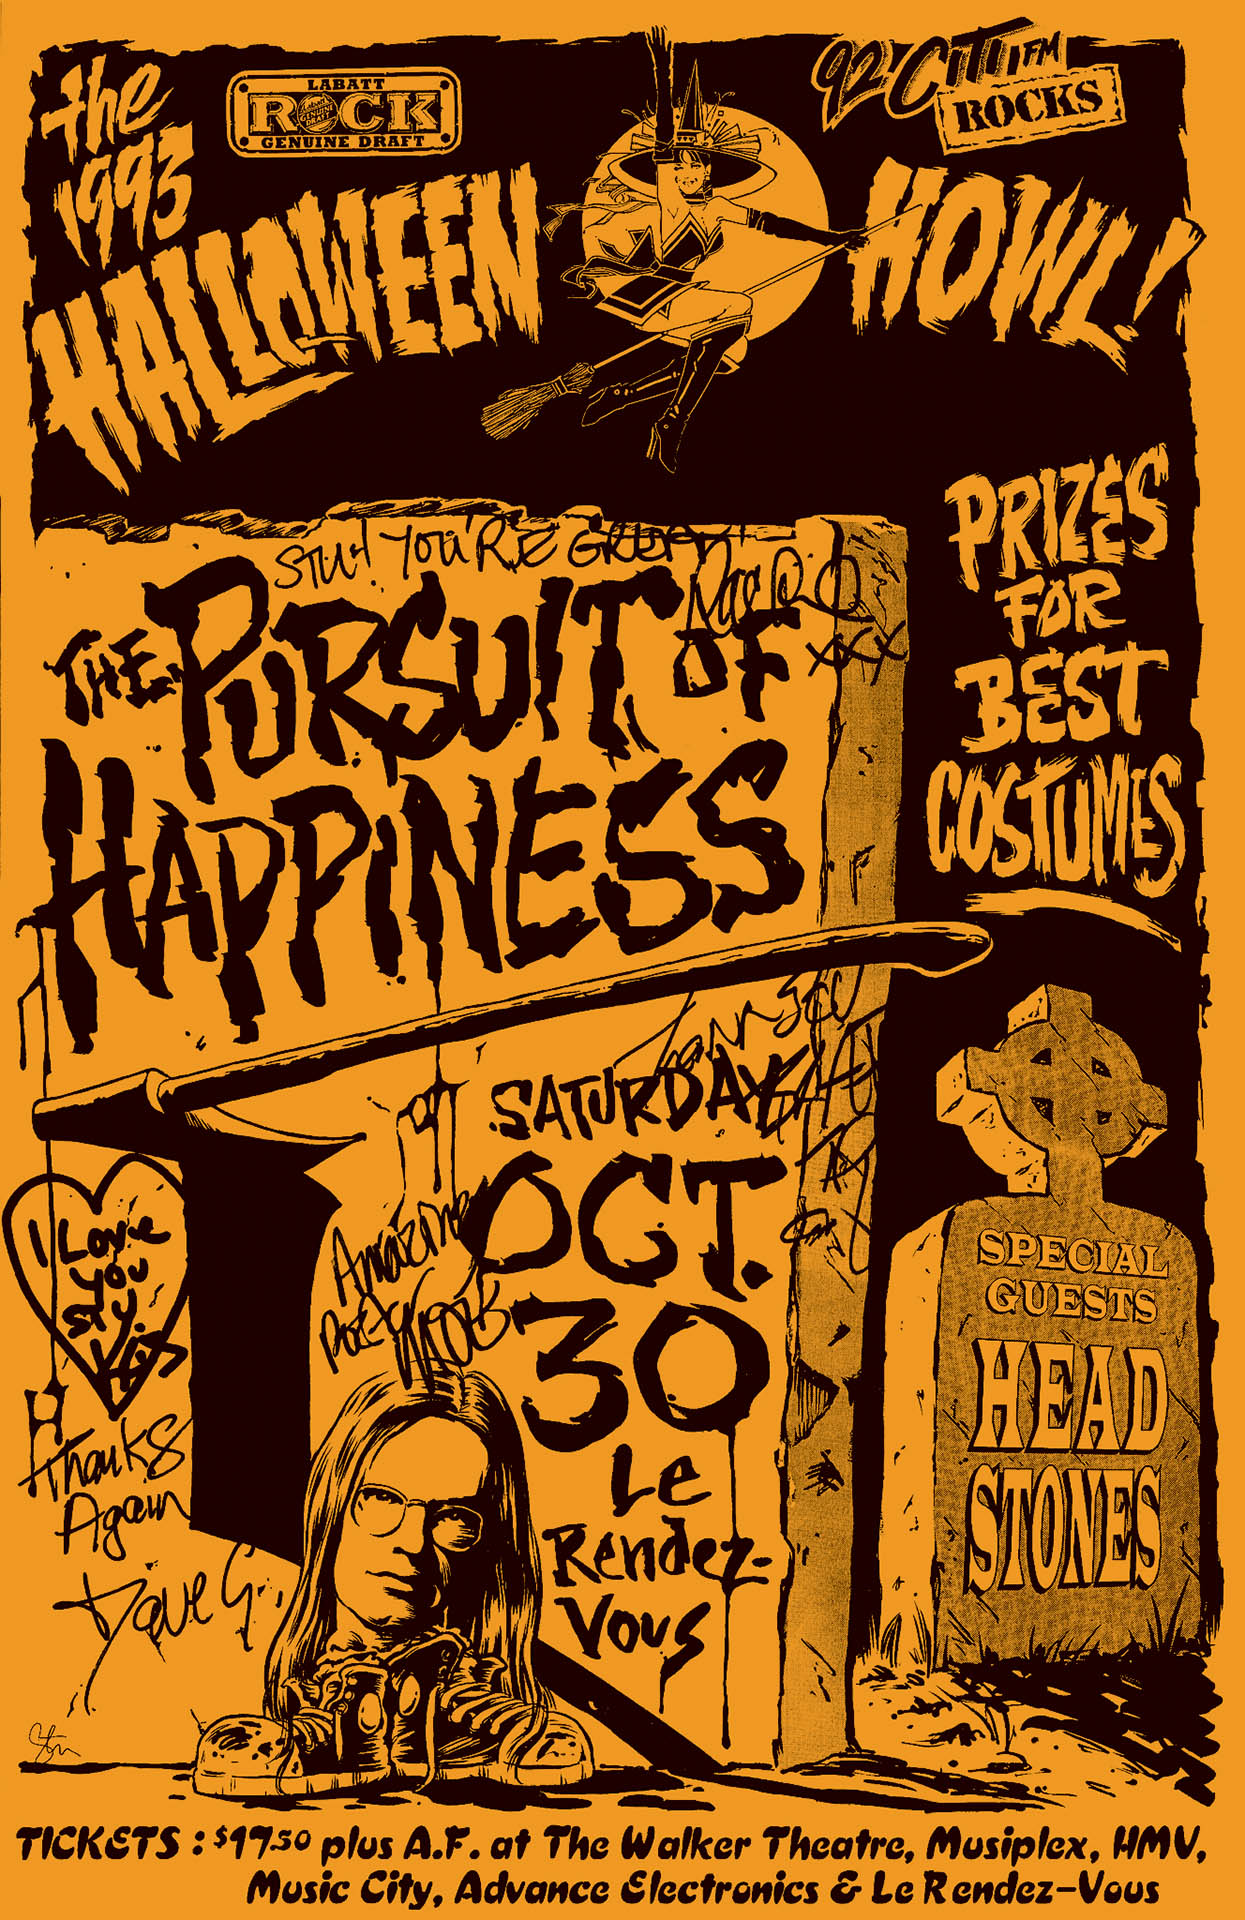 The Pursuit Of Happiness - Halloween - 1993